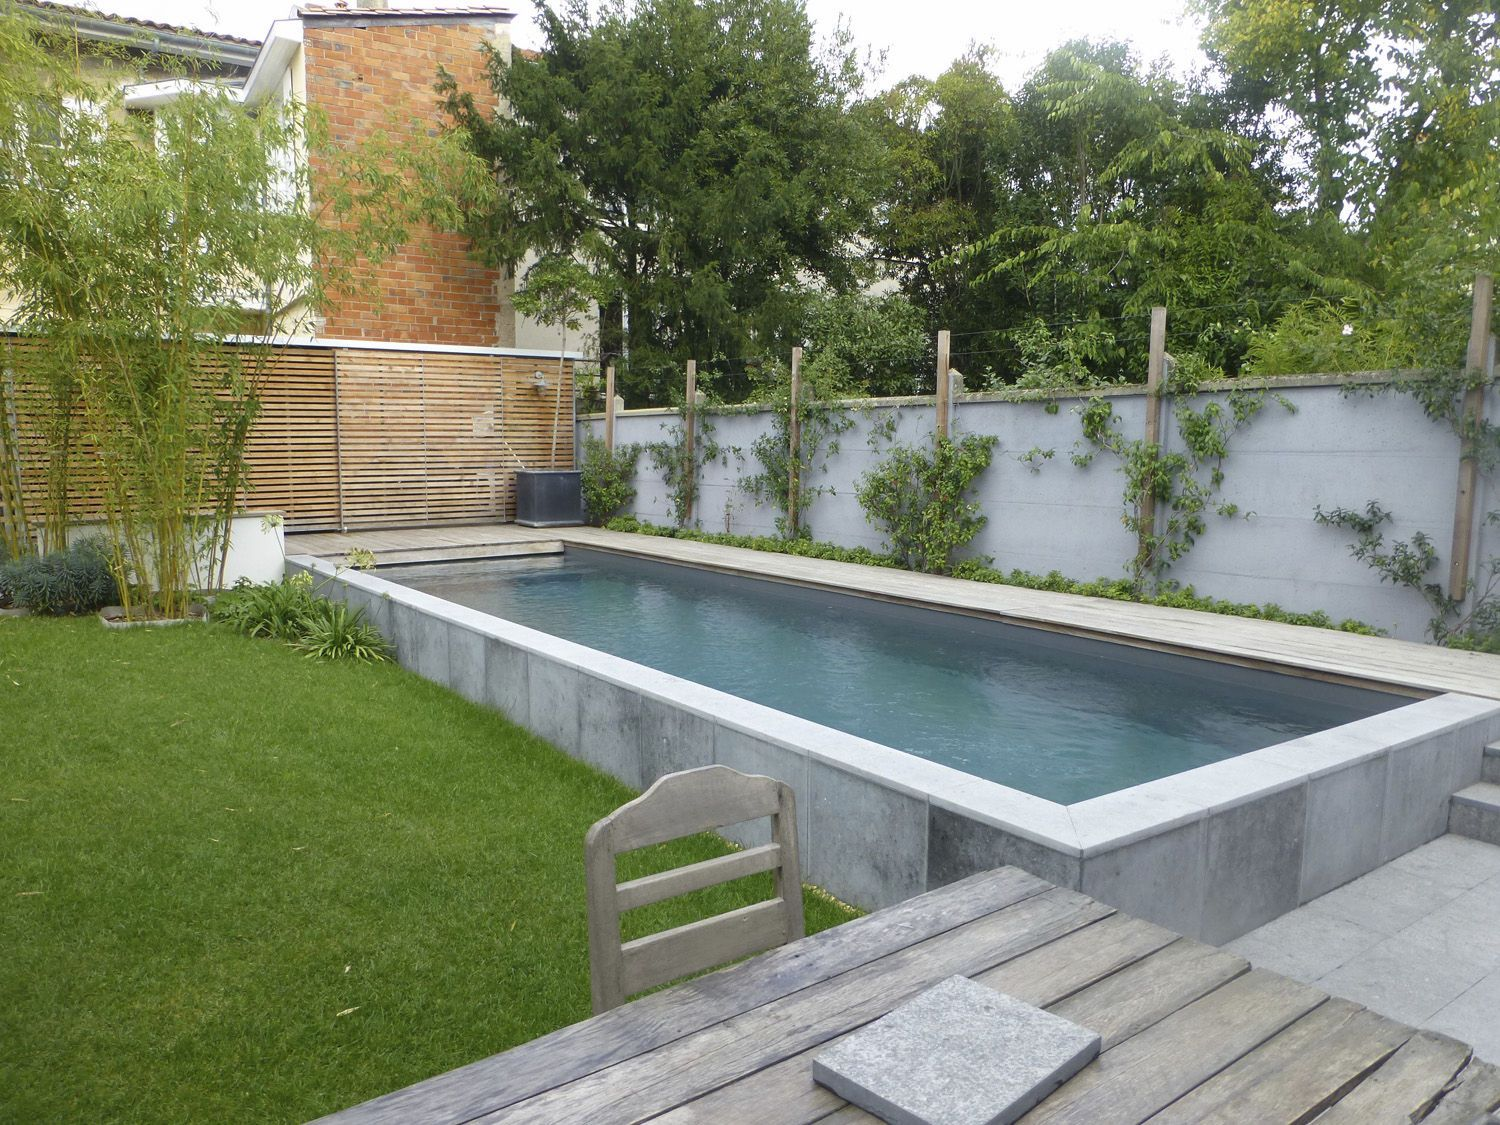 Semi-inground rectangular pool surrounded by concrete, stone ...